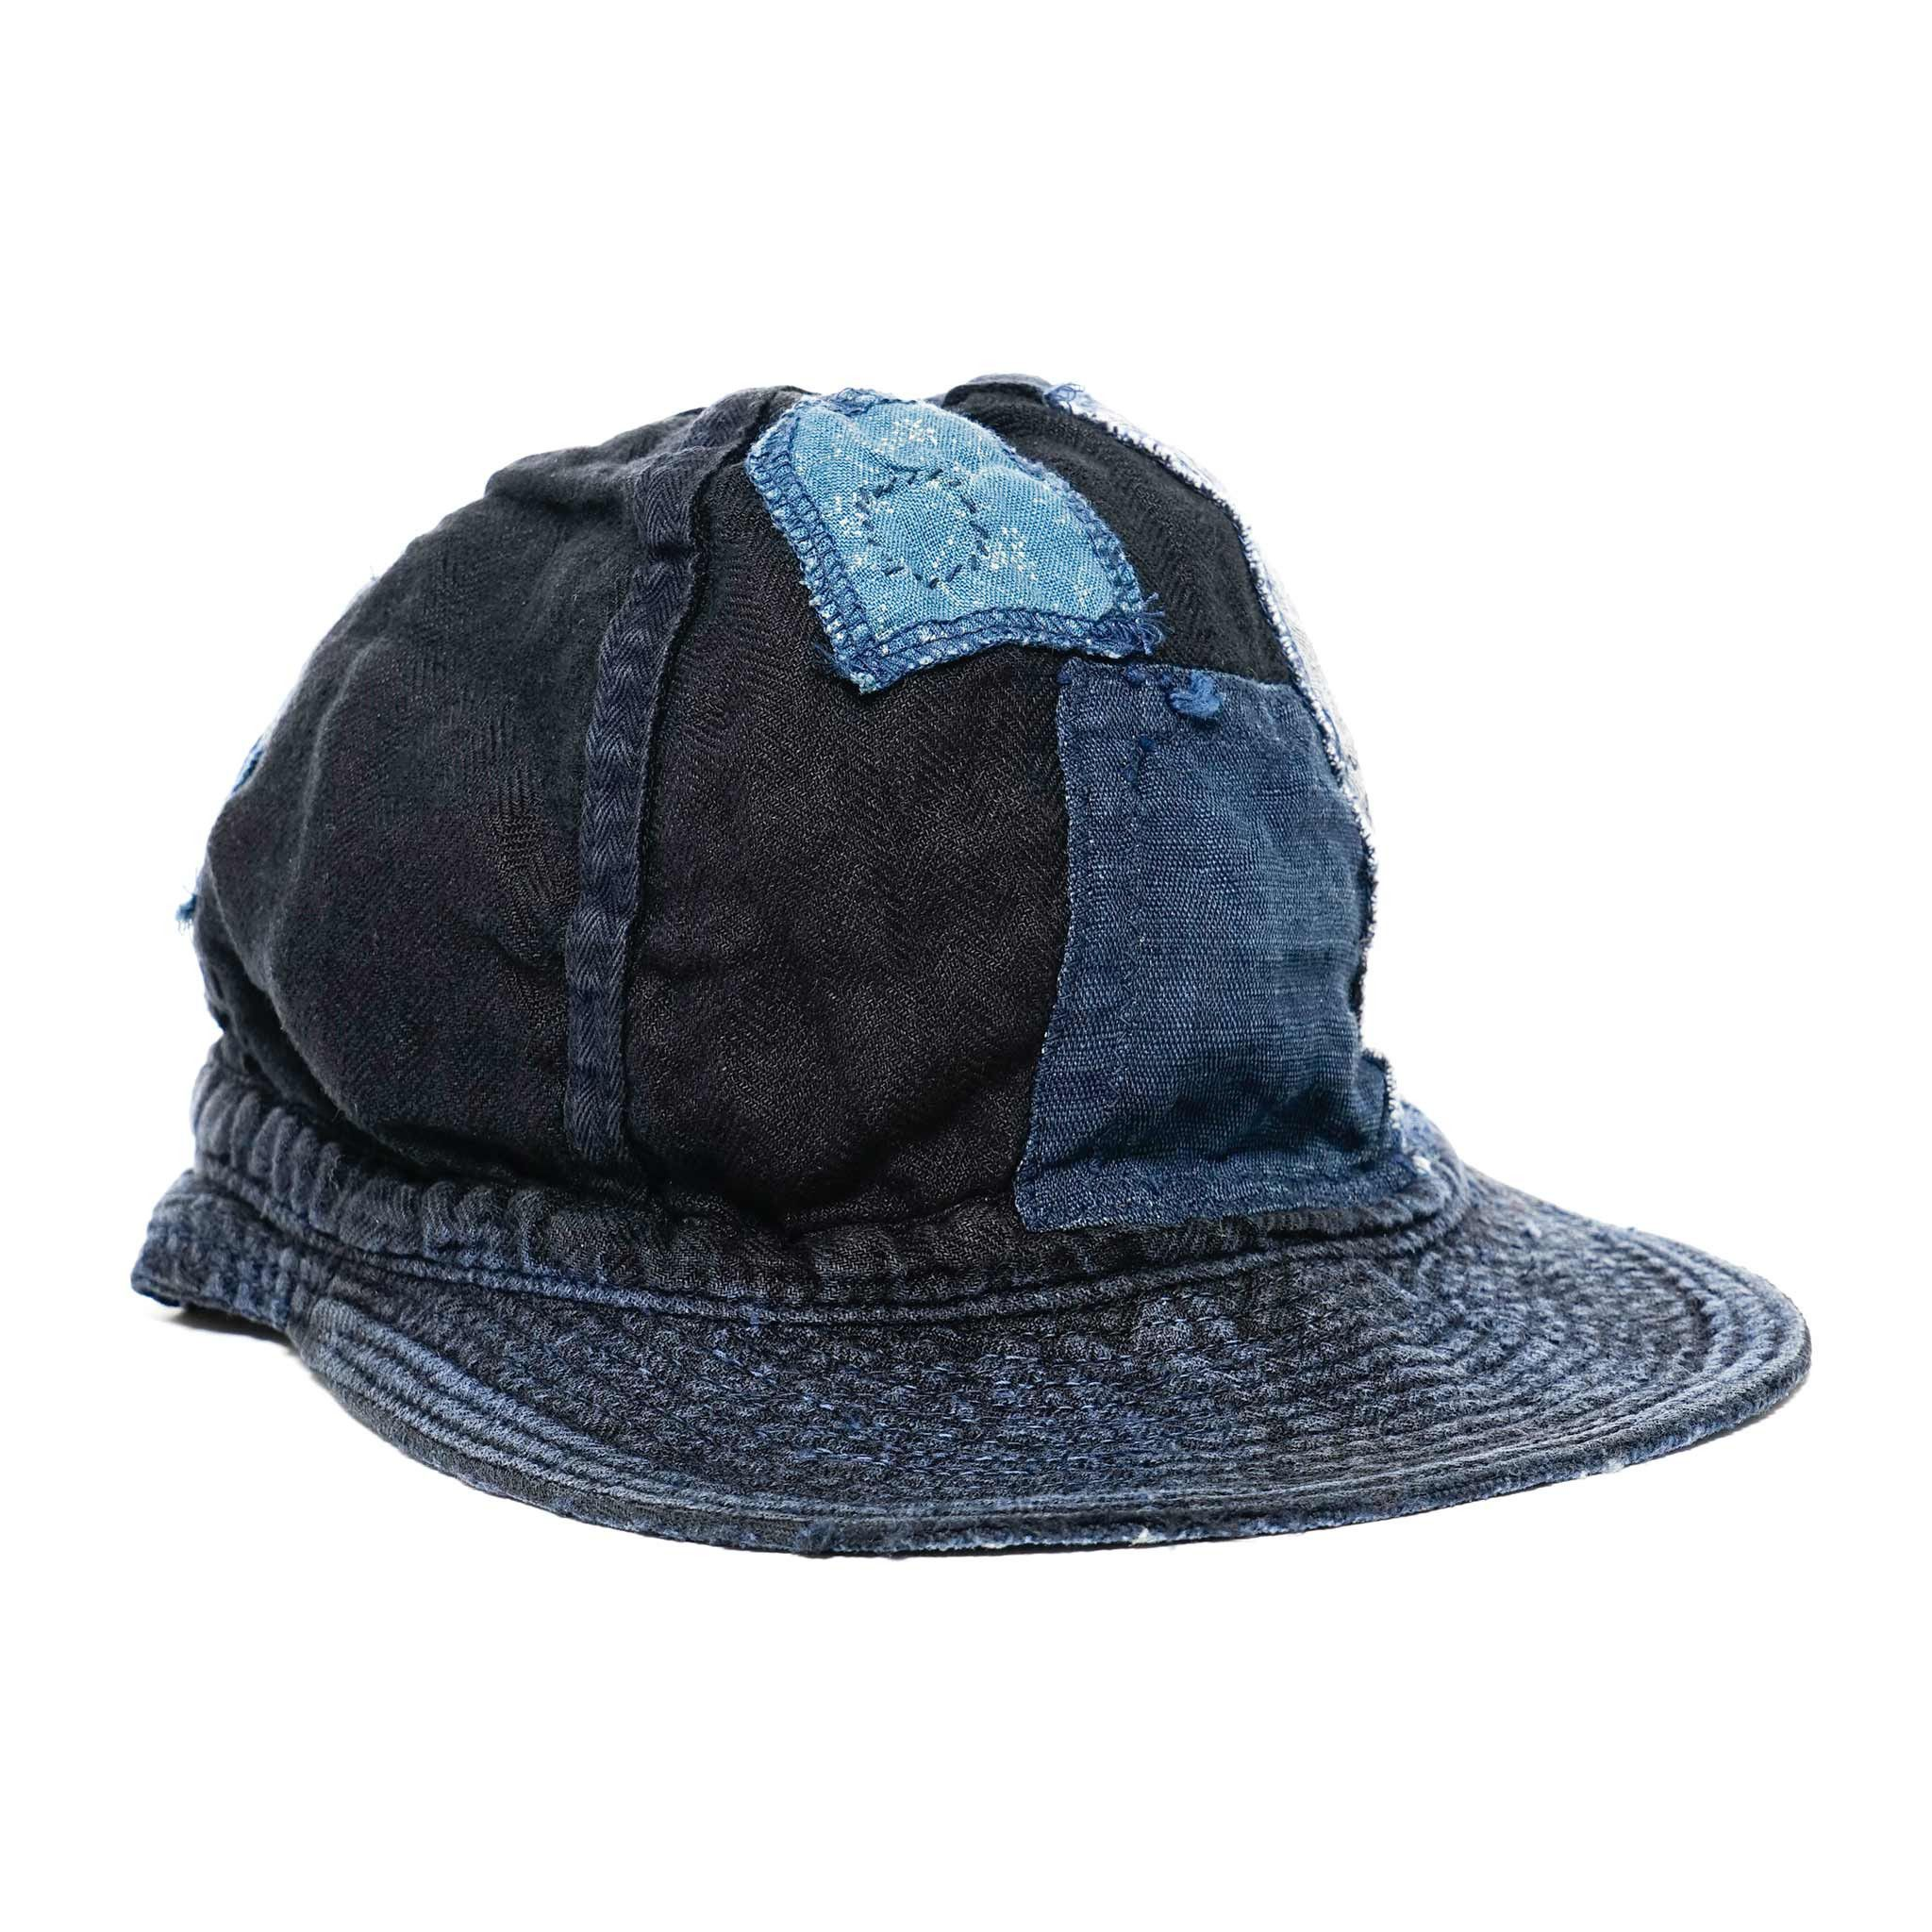 40b1c16981d Vintage Levi s Blue Denim Cap   Leather by TheOldWell on Etsy ...